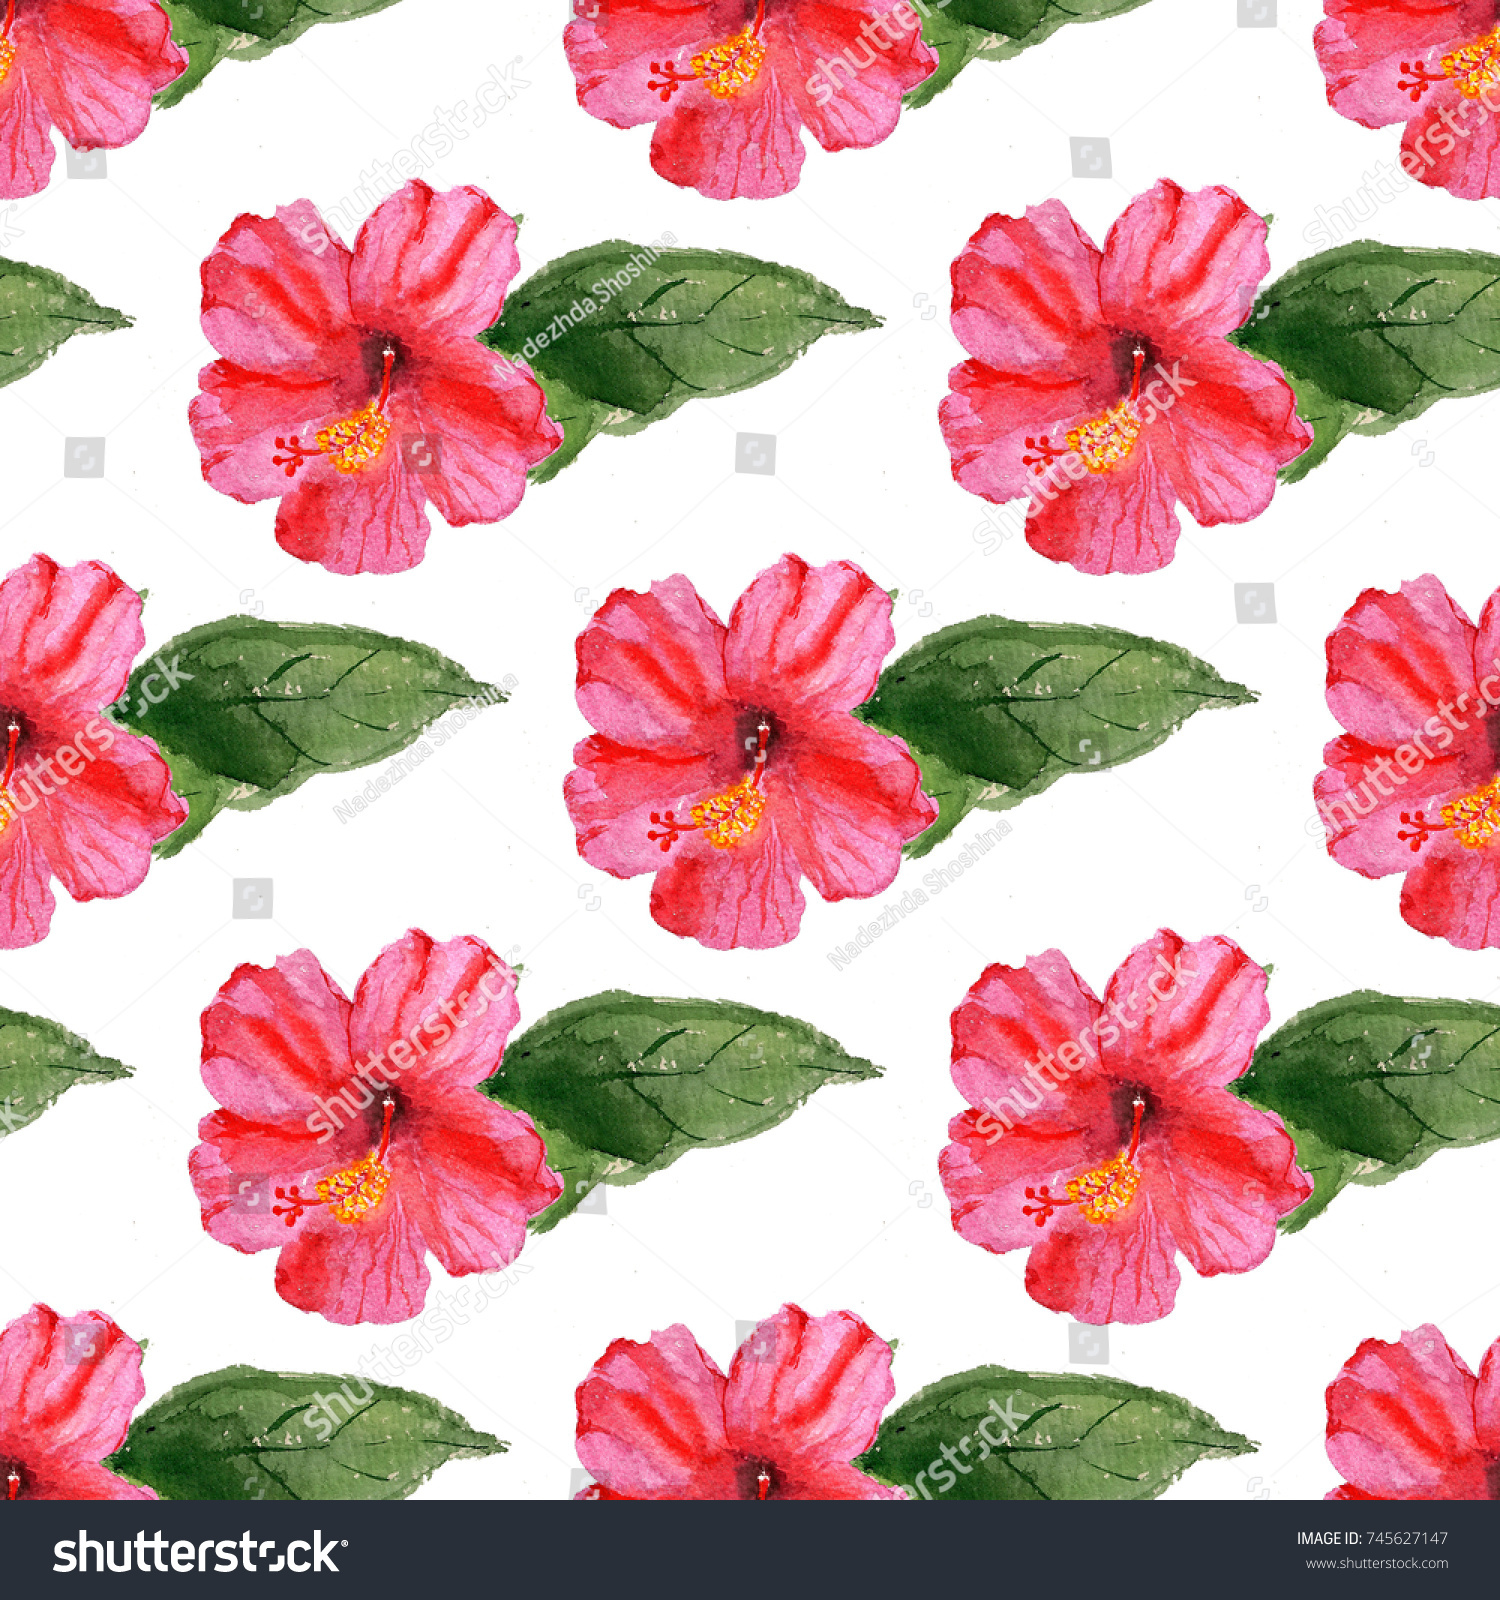 Seamless Pattern With Watercolor Image Of Hibiscus Flower Good For